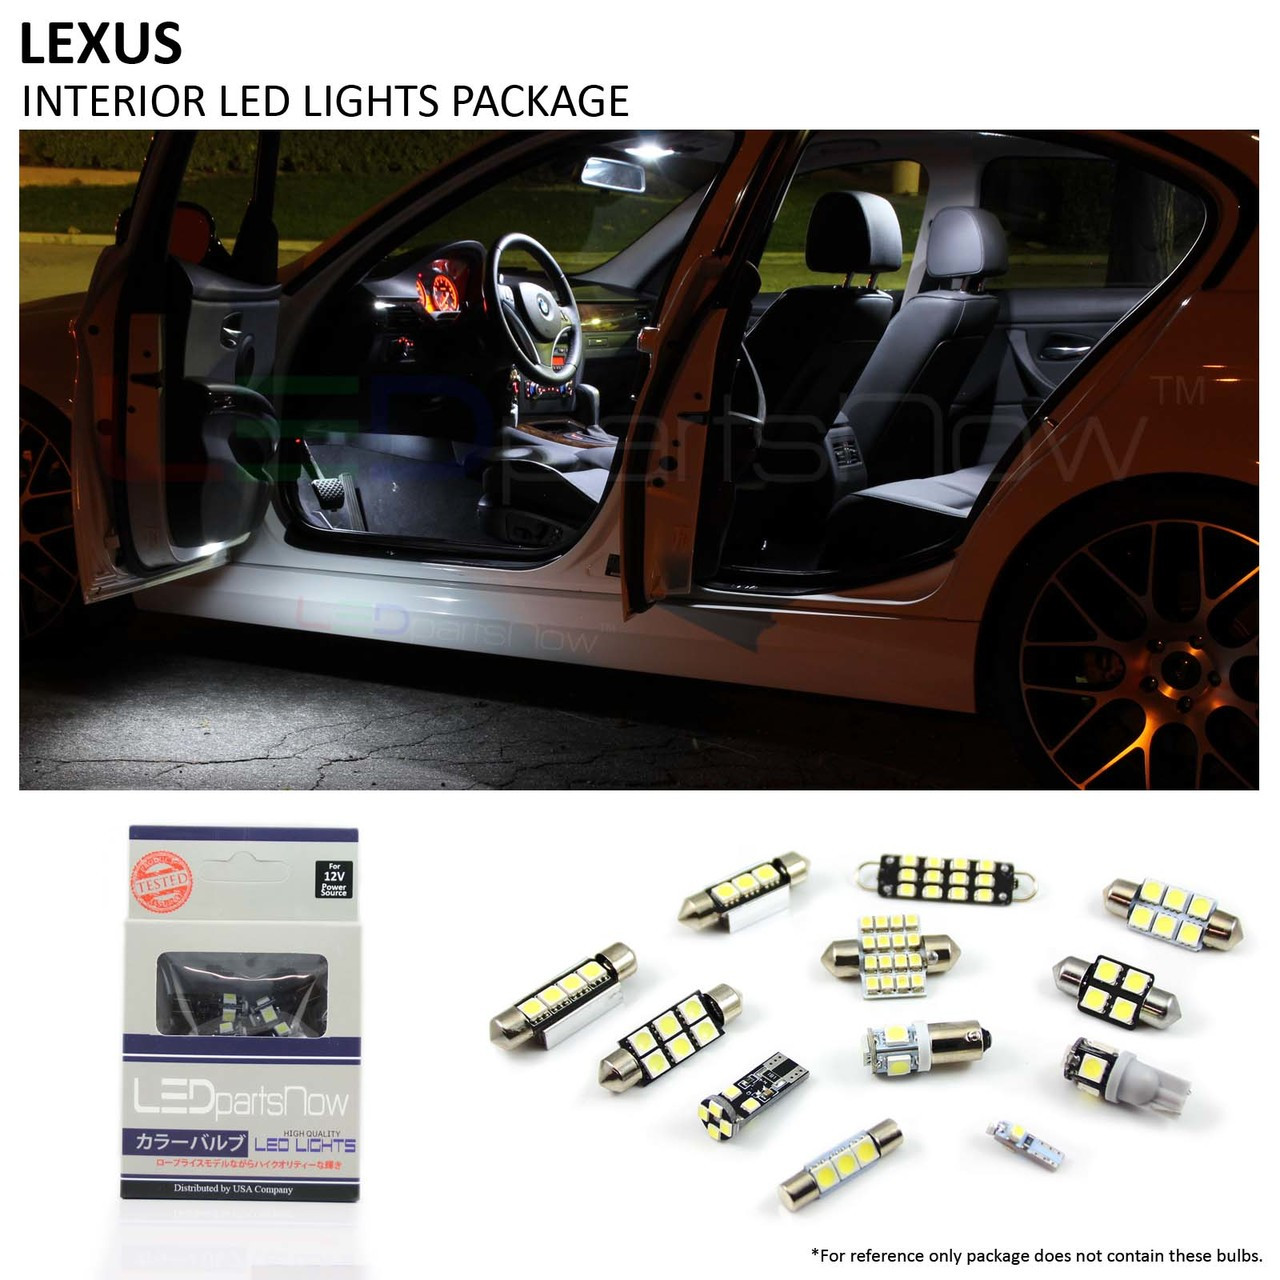 2011 Lexus Fuse Box Together With Control Module For 2011 Lexus Gs450h